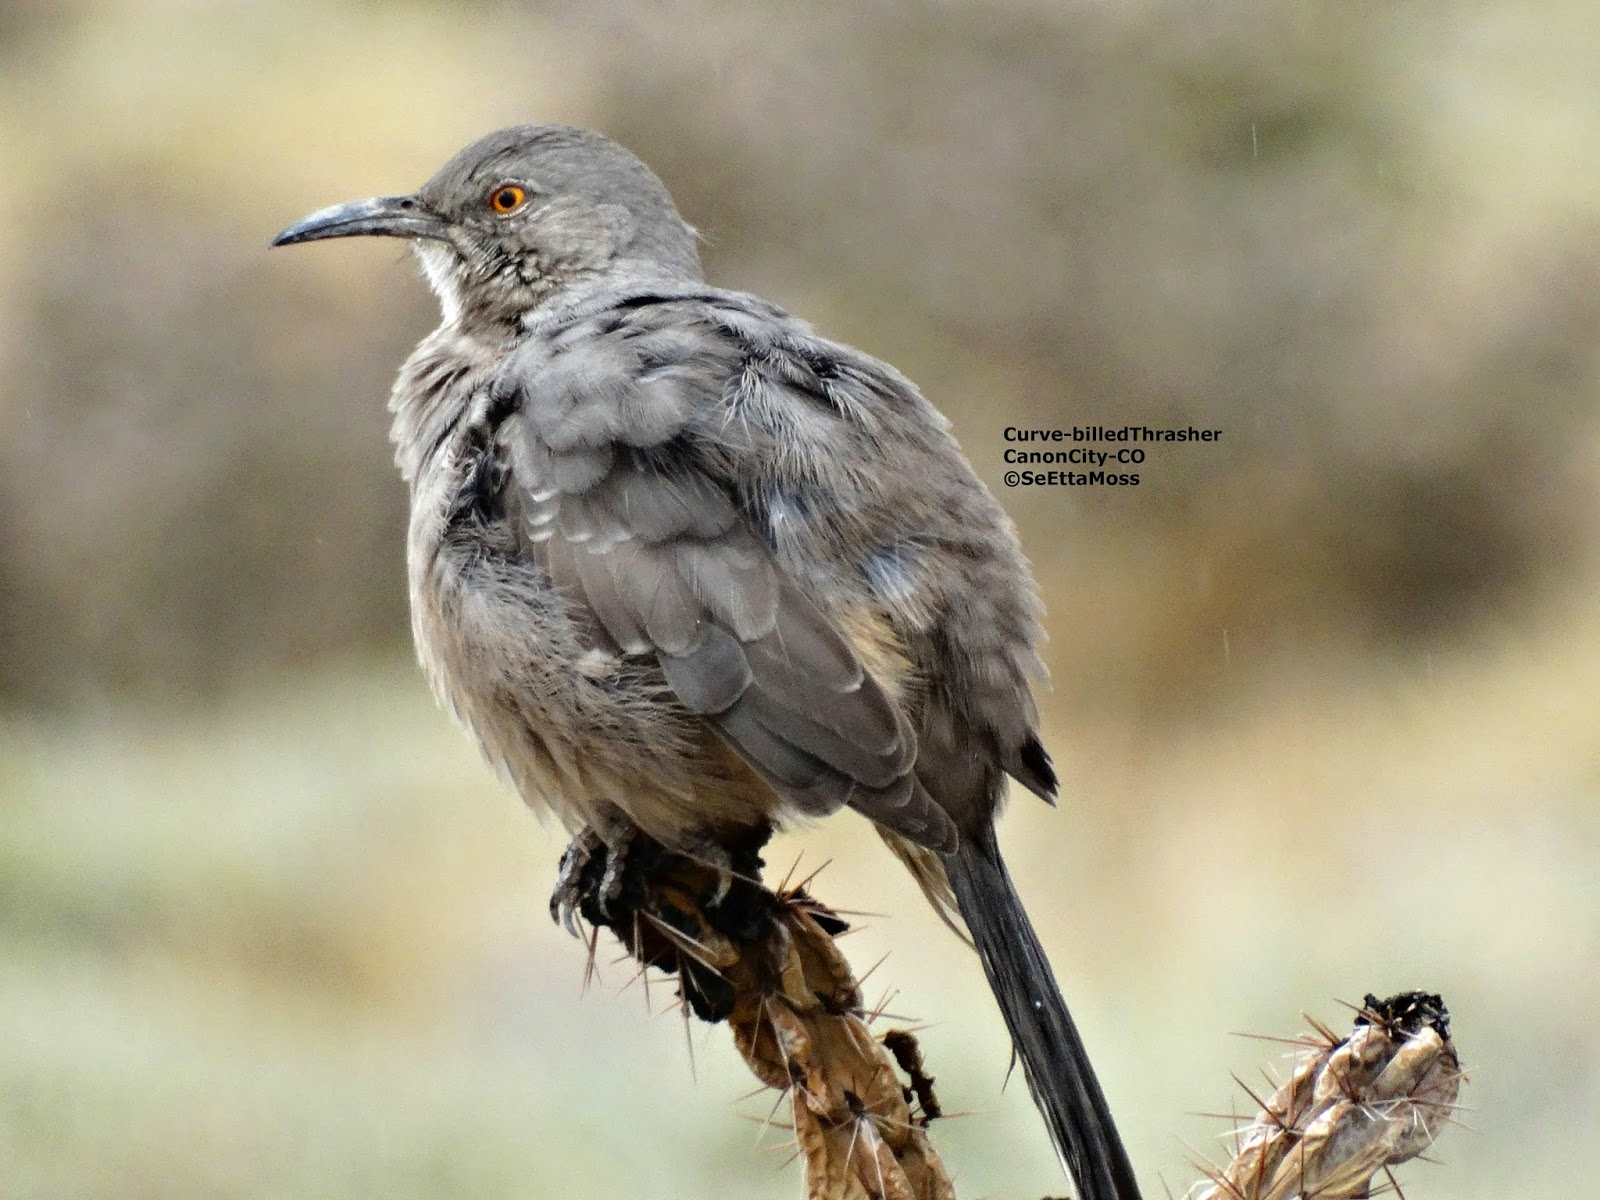 Curved Bill Thrasher Bird The Curved Billed Thrashers